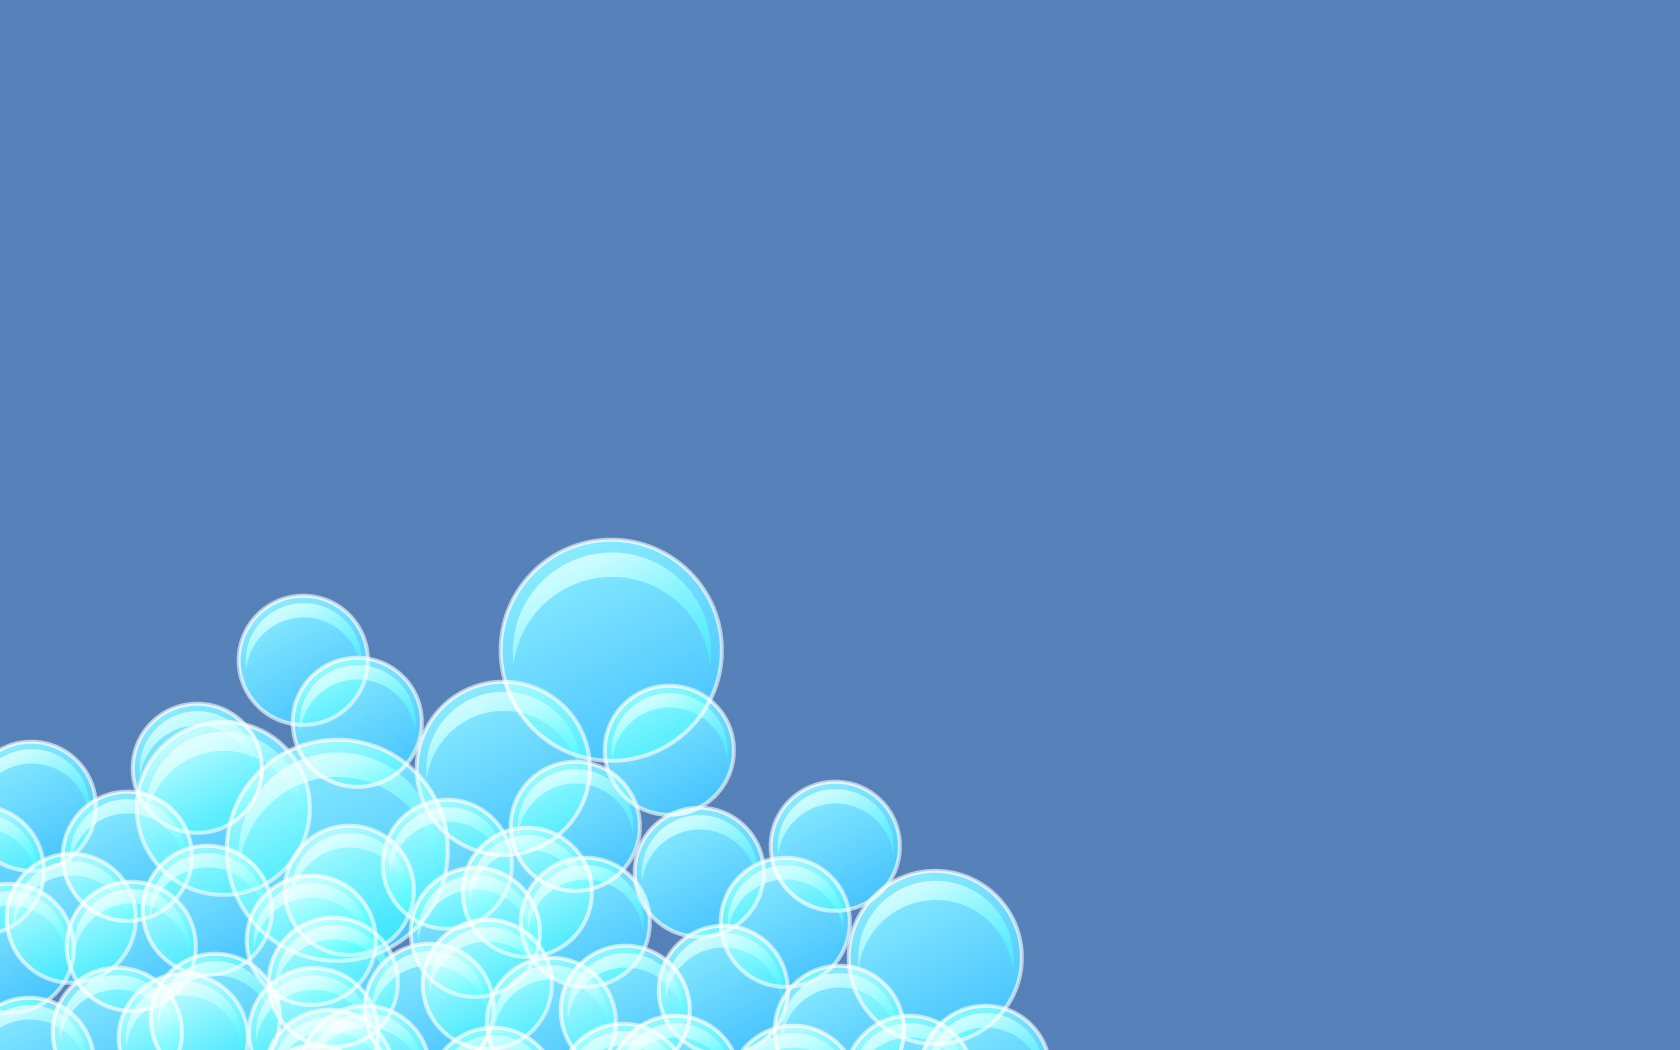 Image Bubbles Wallpapers And Stock Photos